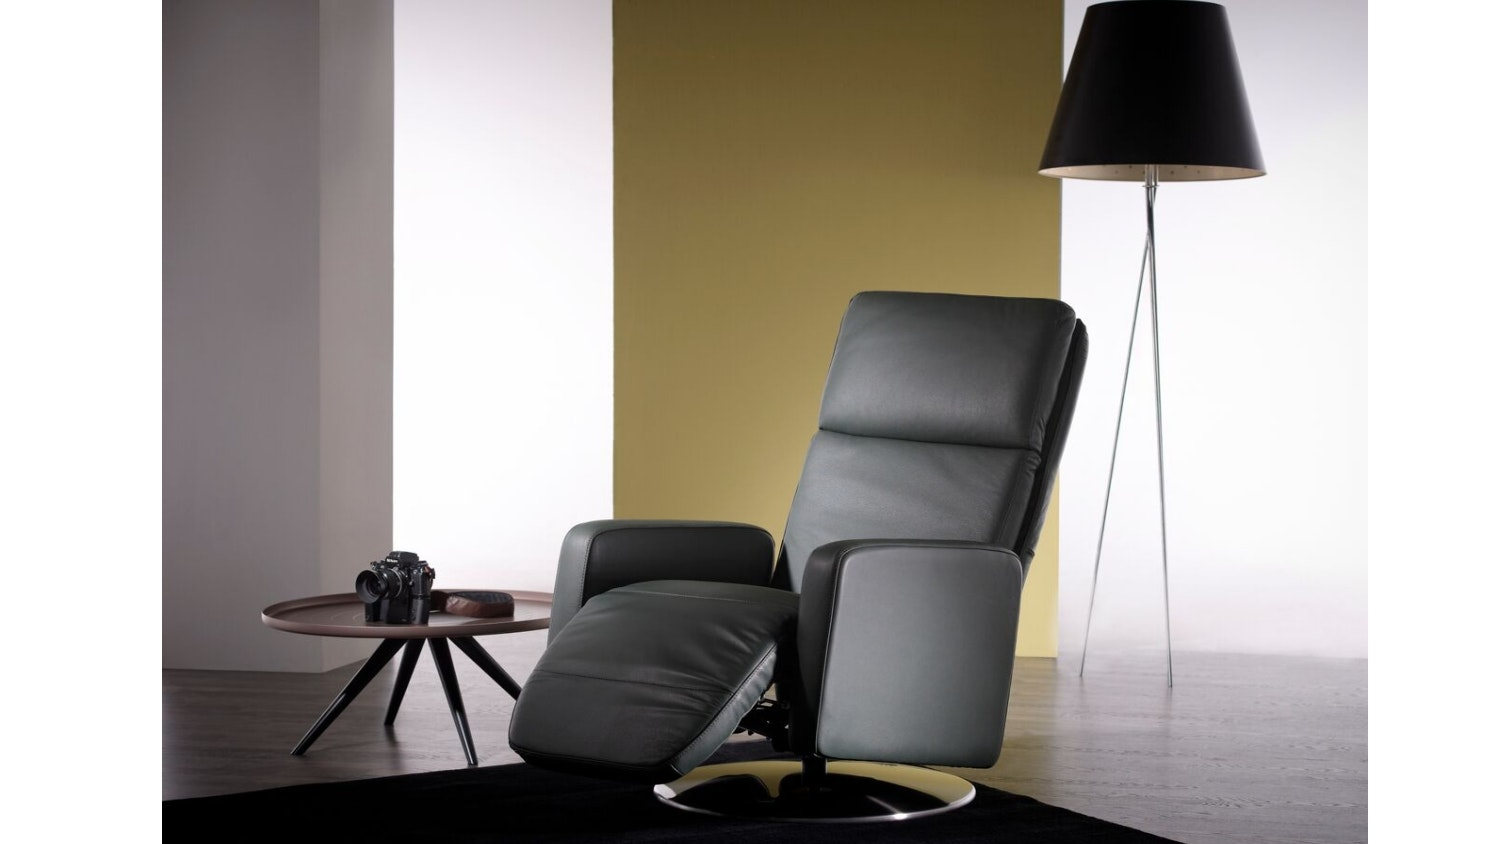 Recline in an armchair  sc 1 st  Harvey Norman & Furniture Furniture Singapore u2013 Armchair Recliner Chair | Harvey ... islam-shia.org